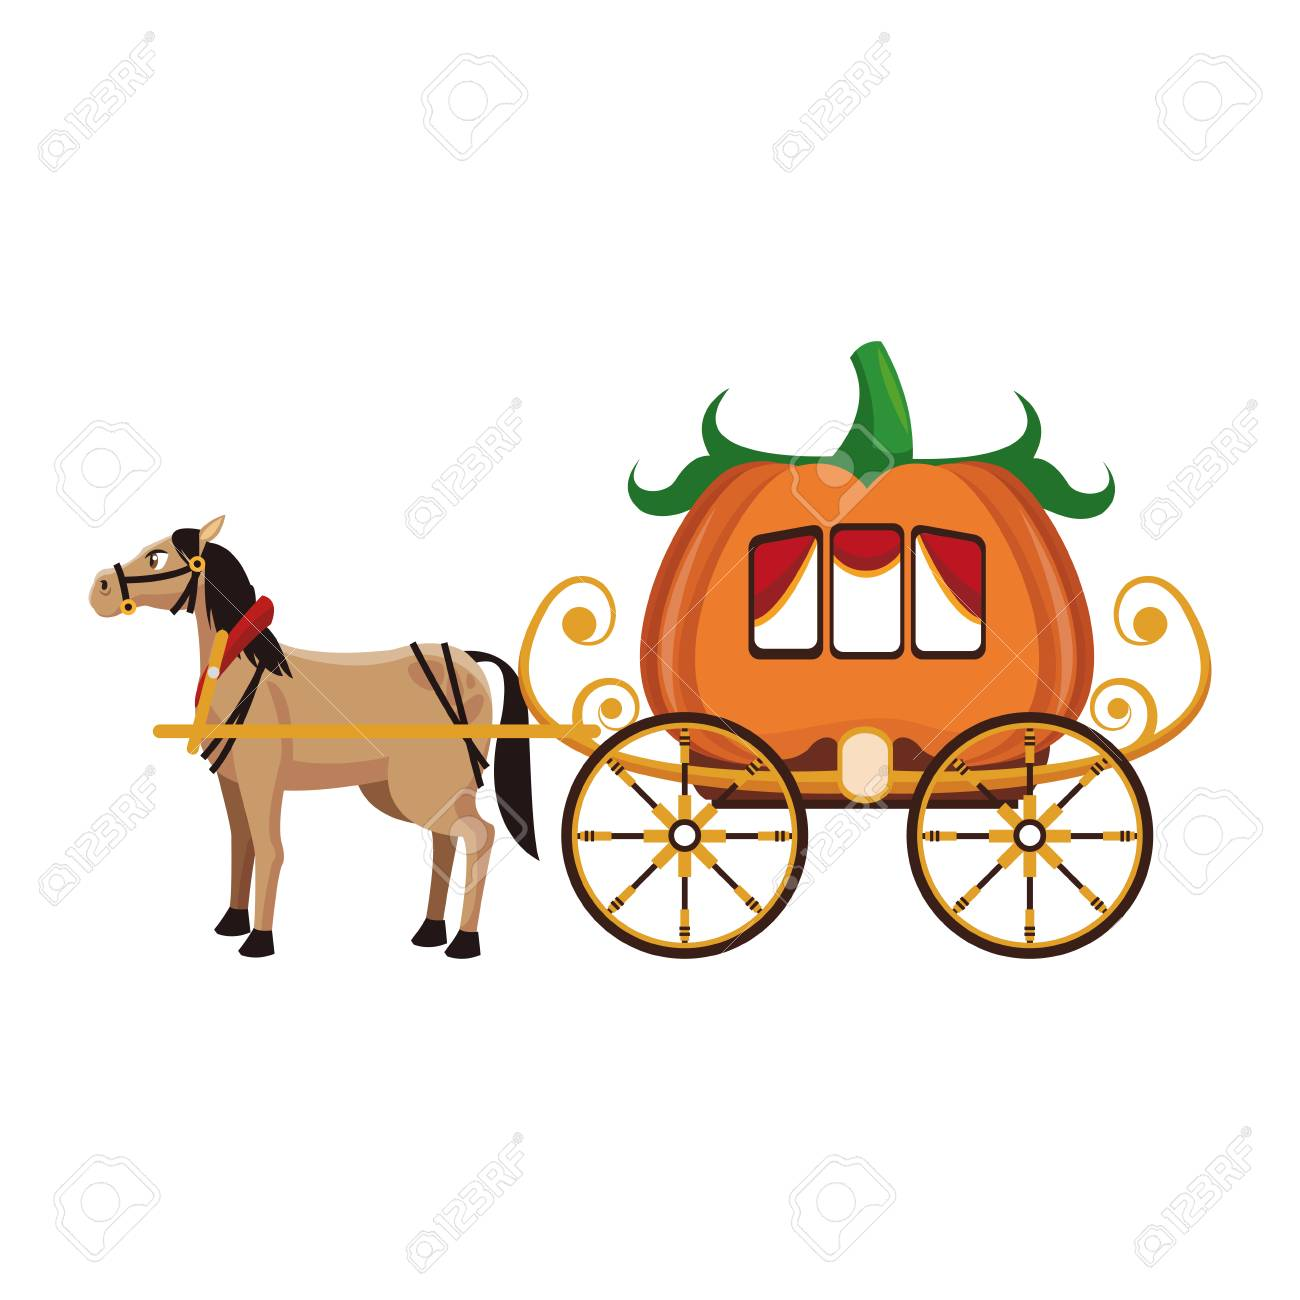 Pumpkin carriage with horse cartoon icon vector illustration graphic design - 95559771